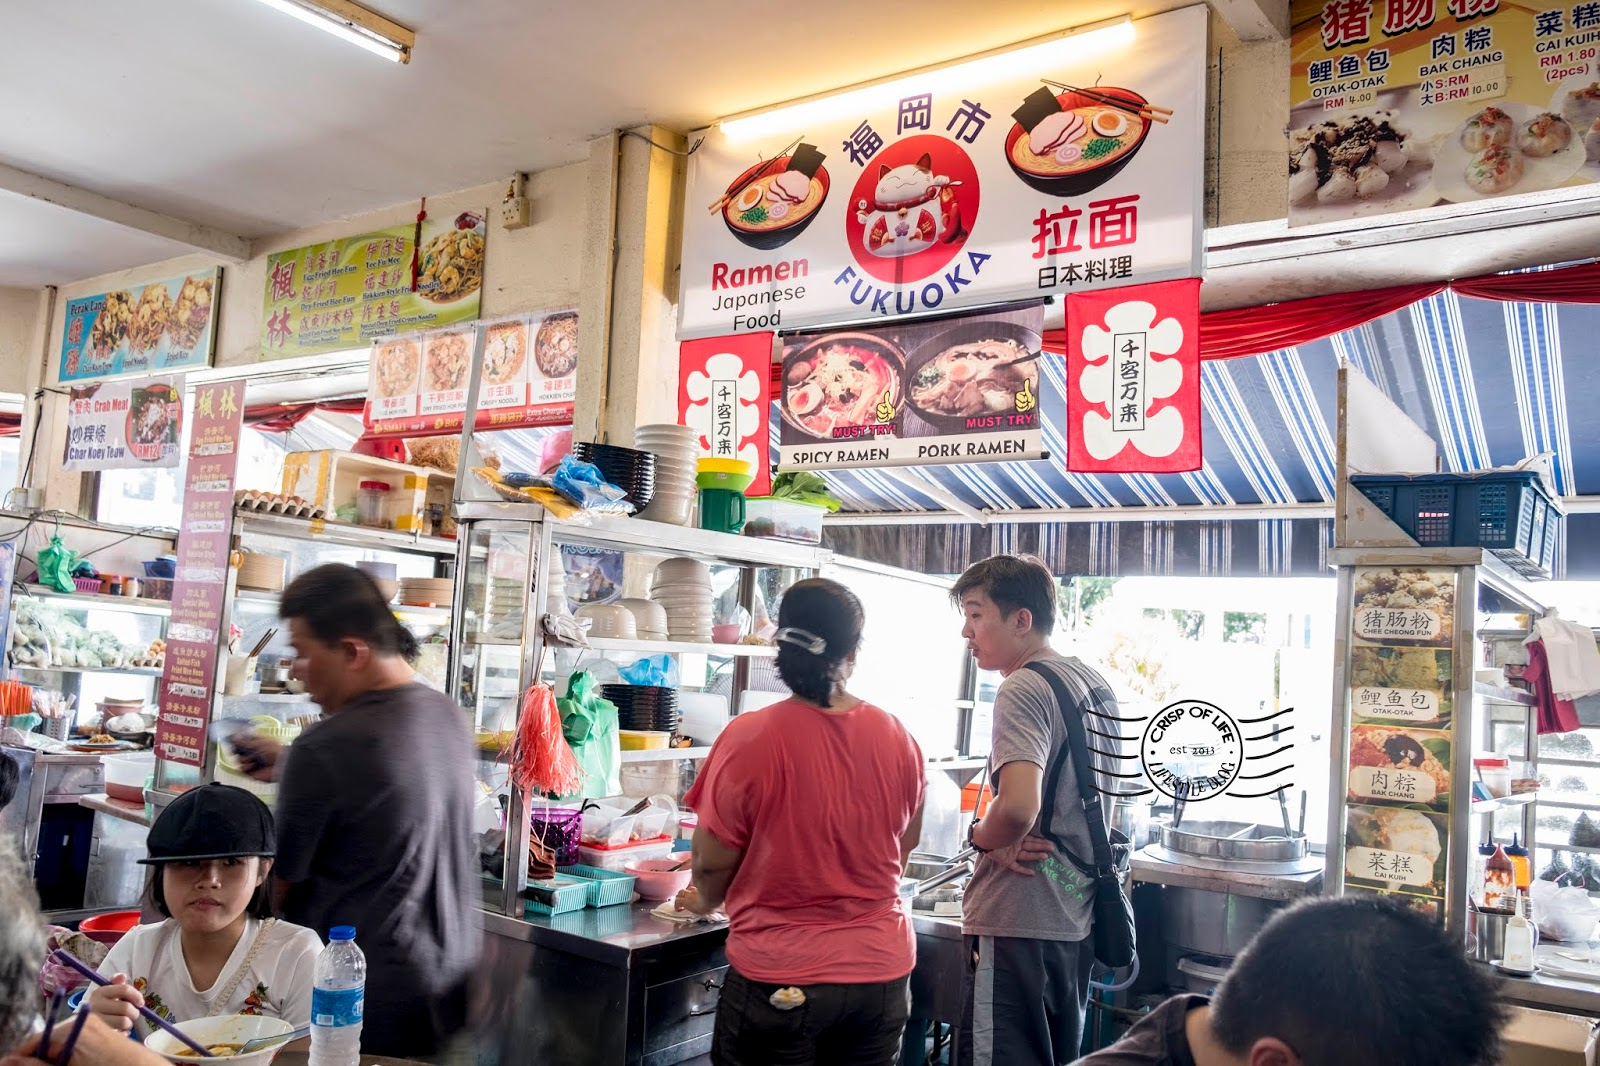 Penang Cheapest Ramen at Heng Ong Huat 1168 Coffee Shop